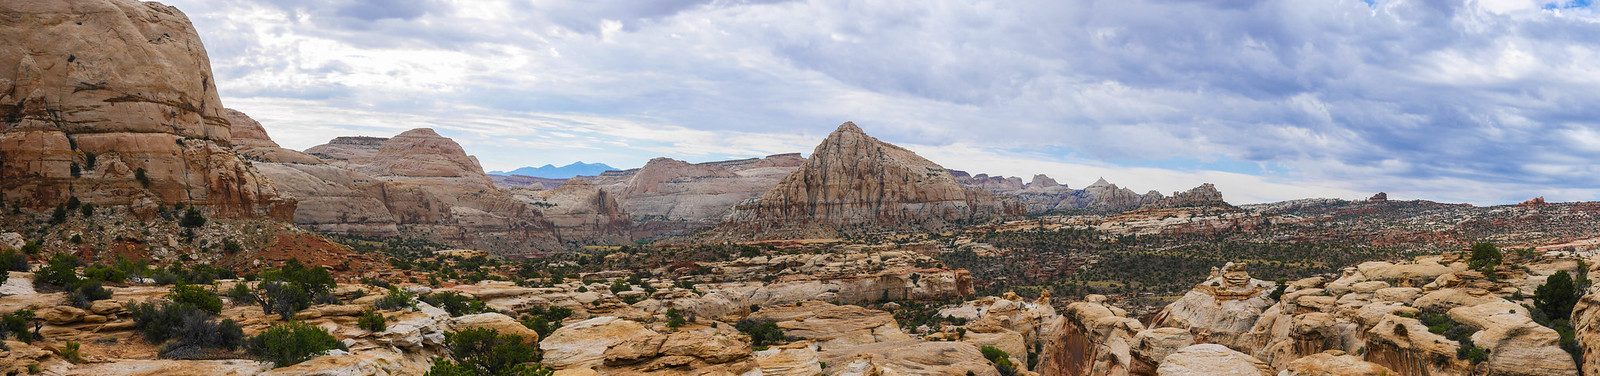 Panorama from along the Rim Overlook Trail